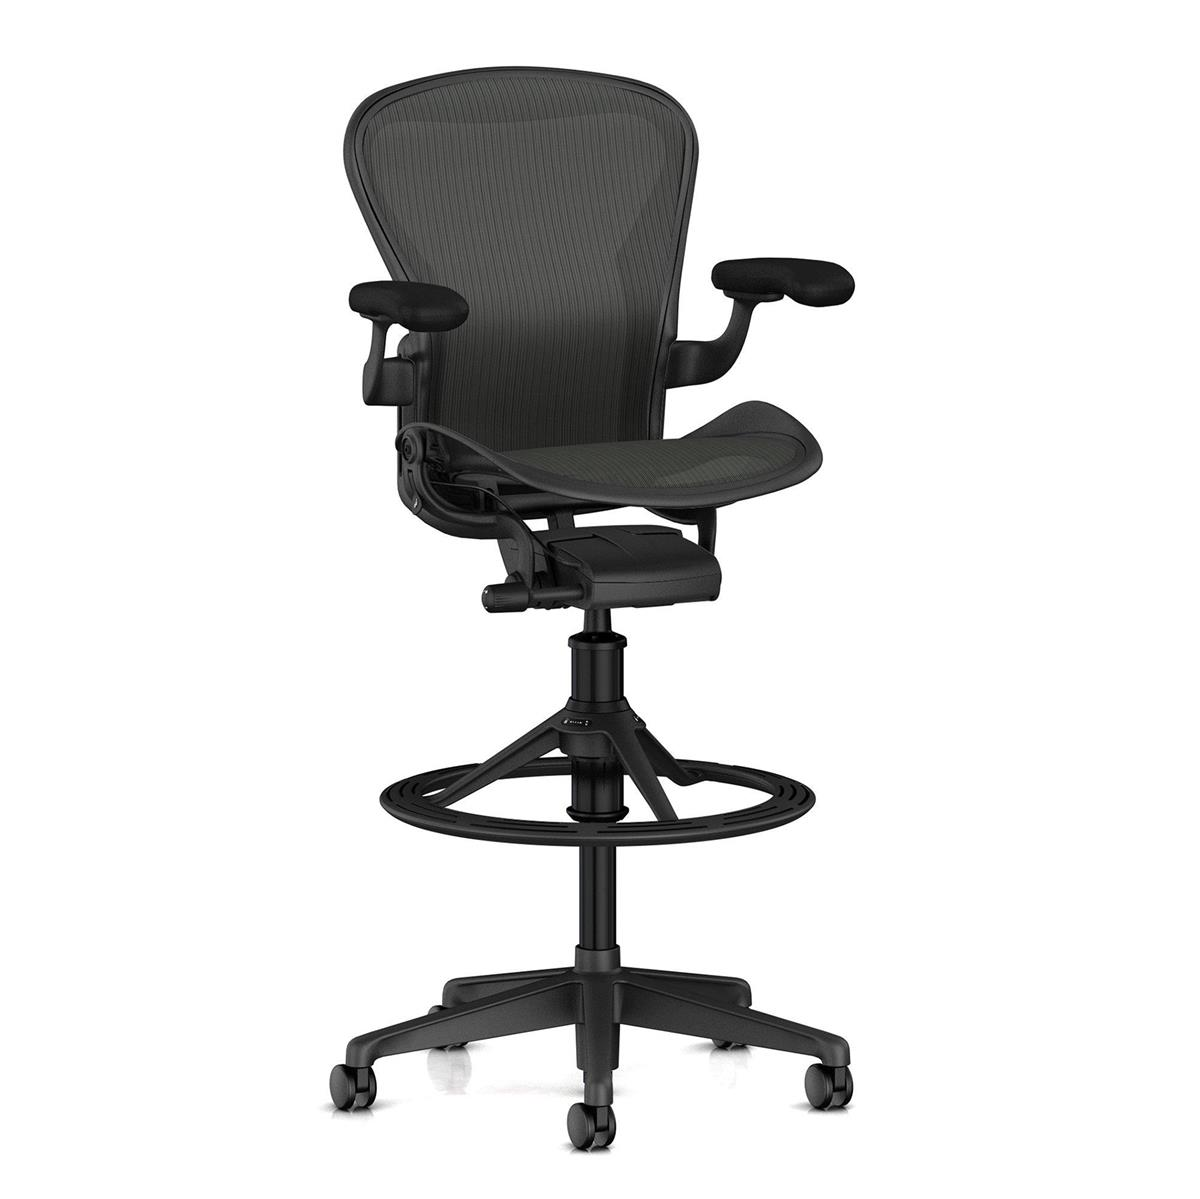 Aeron Stool Counter Height (basic) - Graphite & Stationary Arms